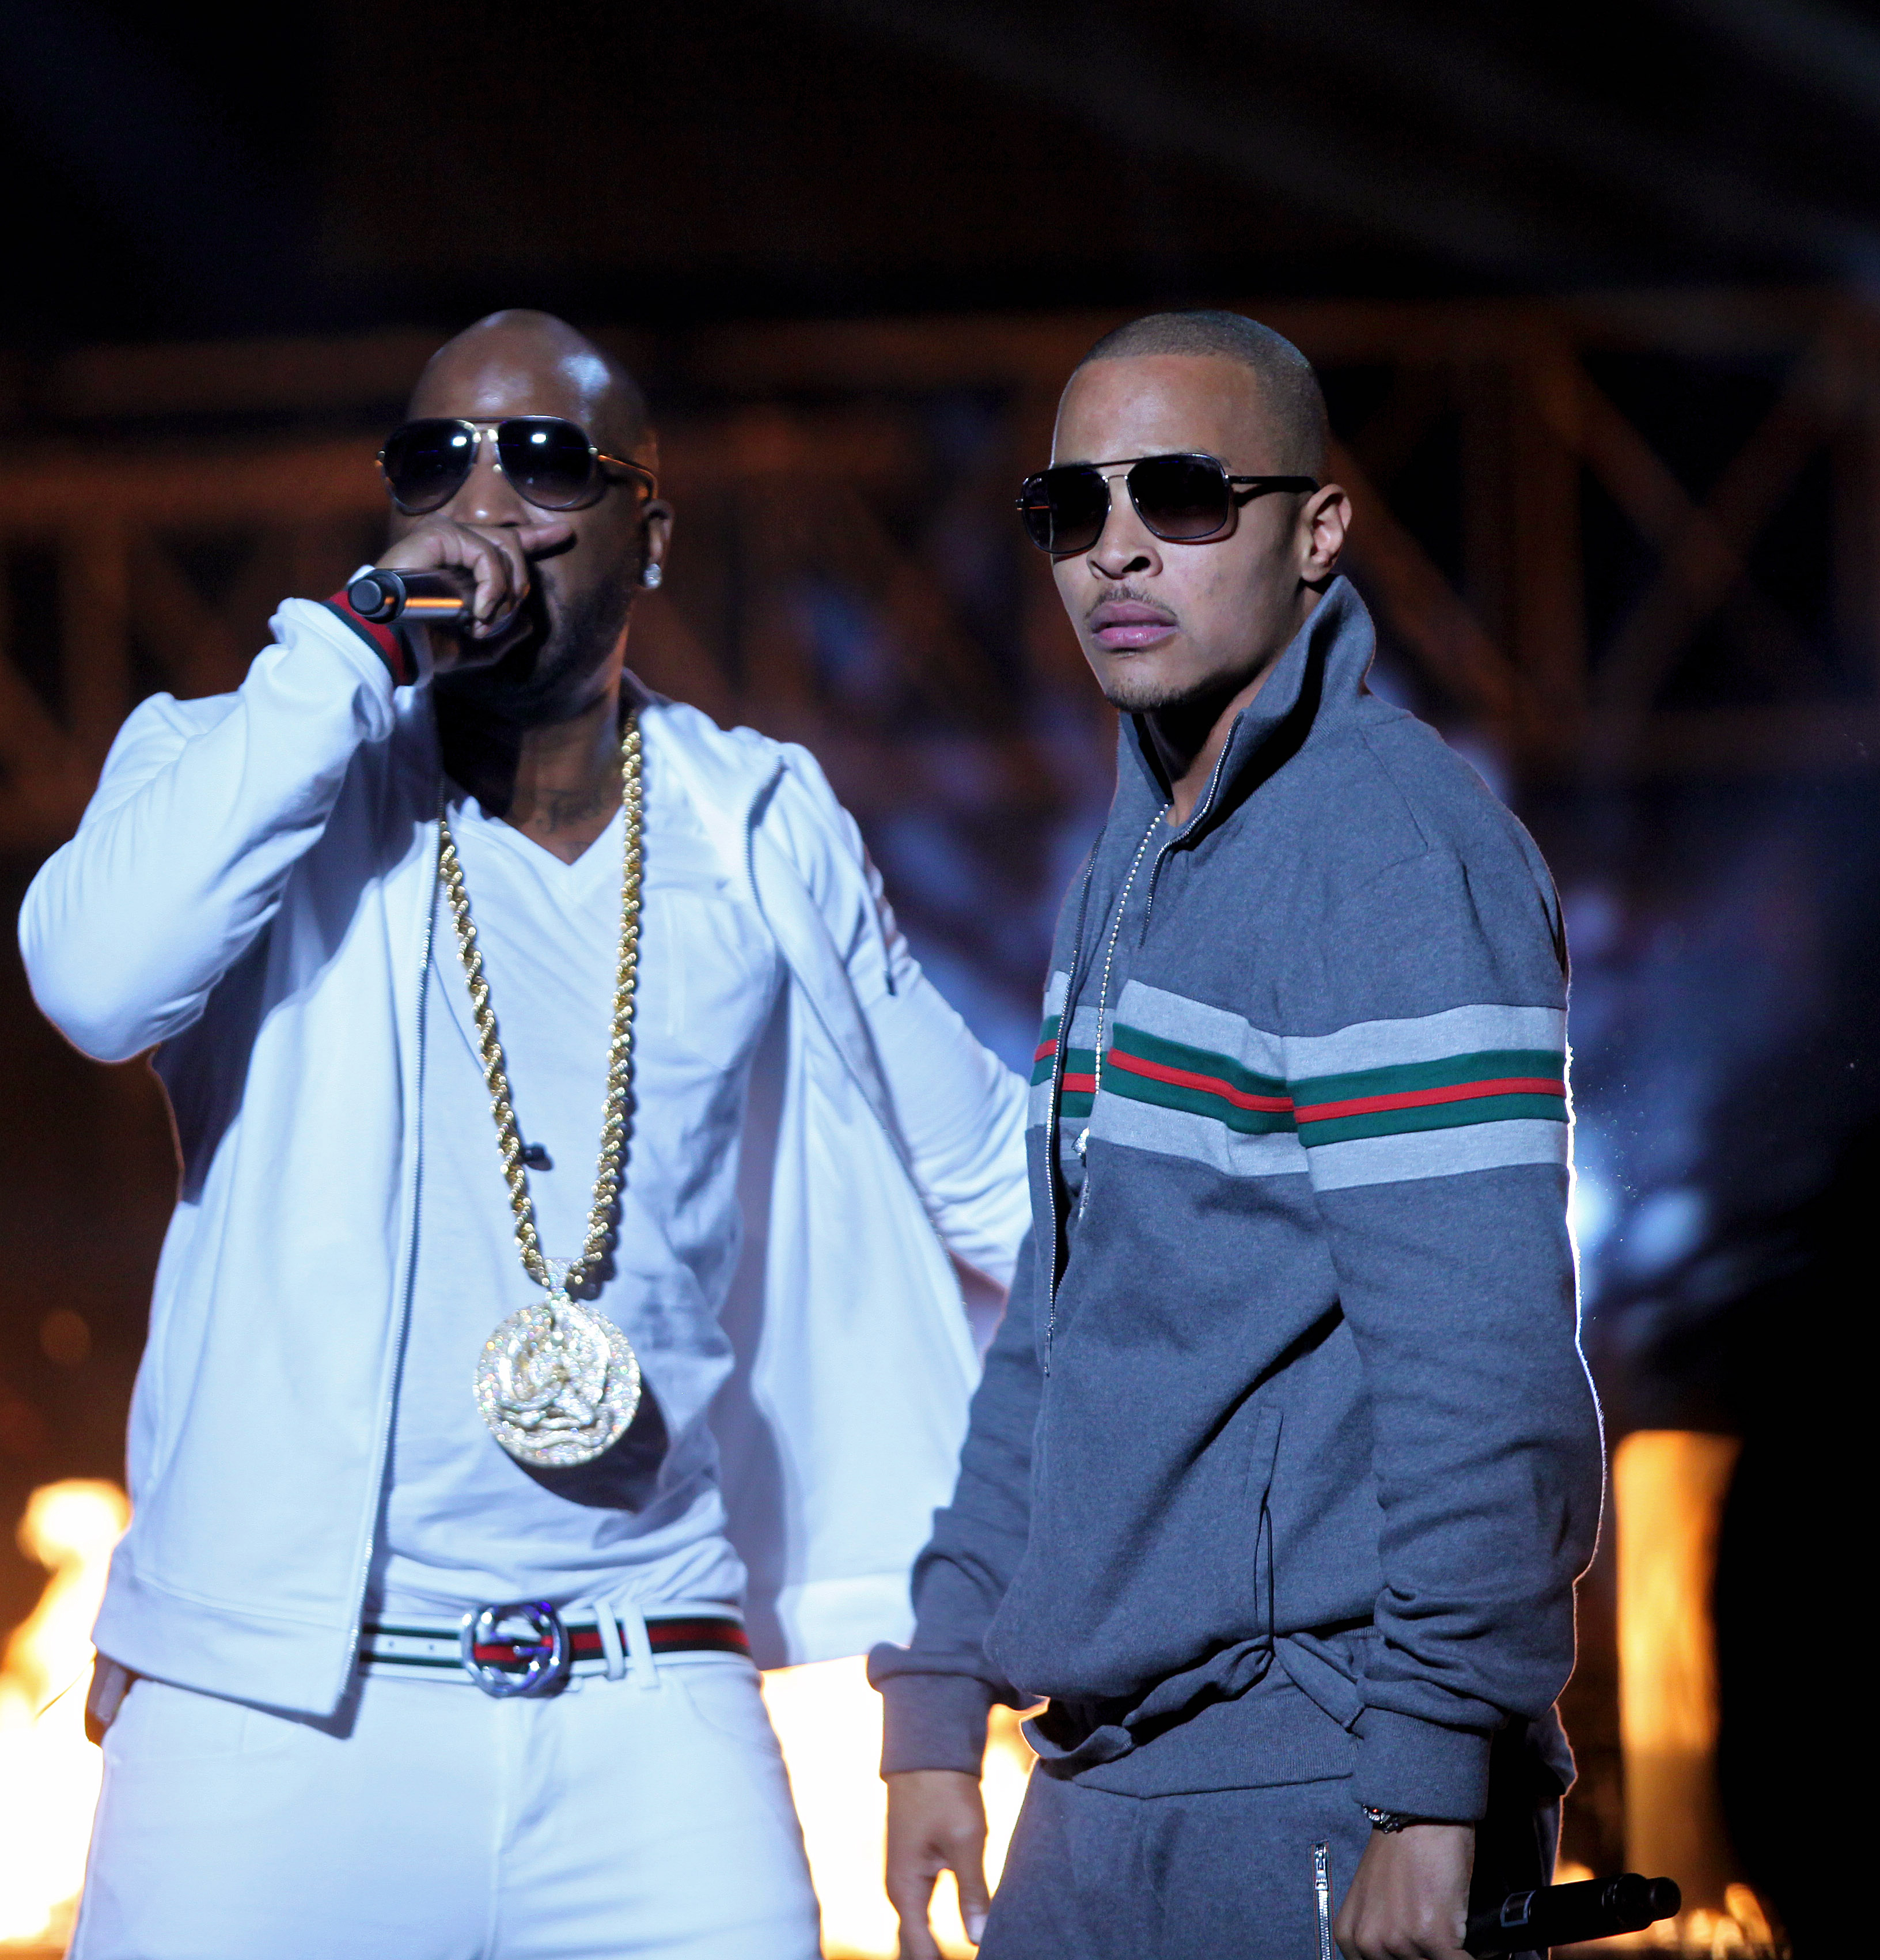 Rappers T.I. and Young Jeezy during the BET Hip Hop Awards in Atlanta on Oct. 1, 2011.